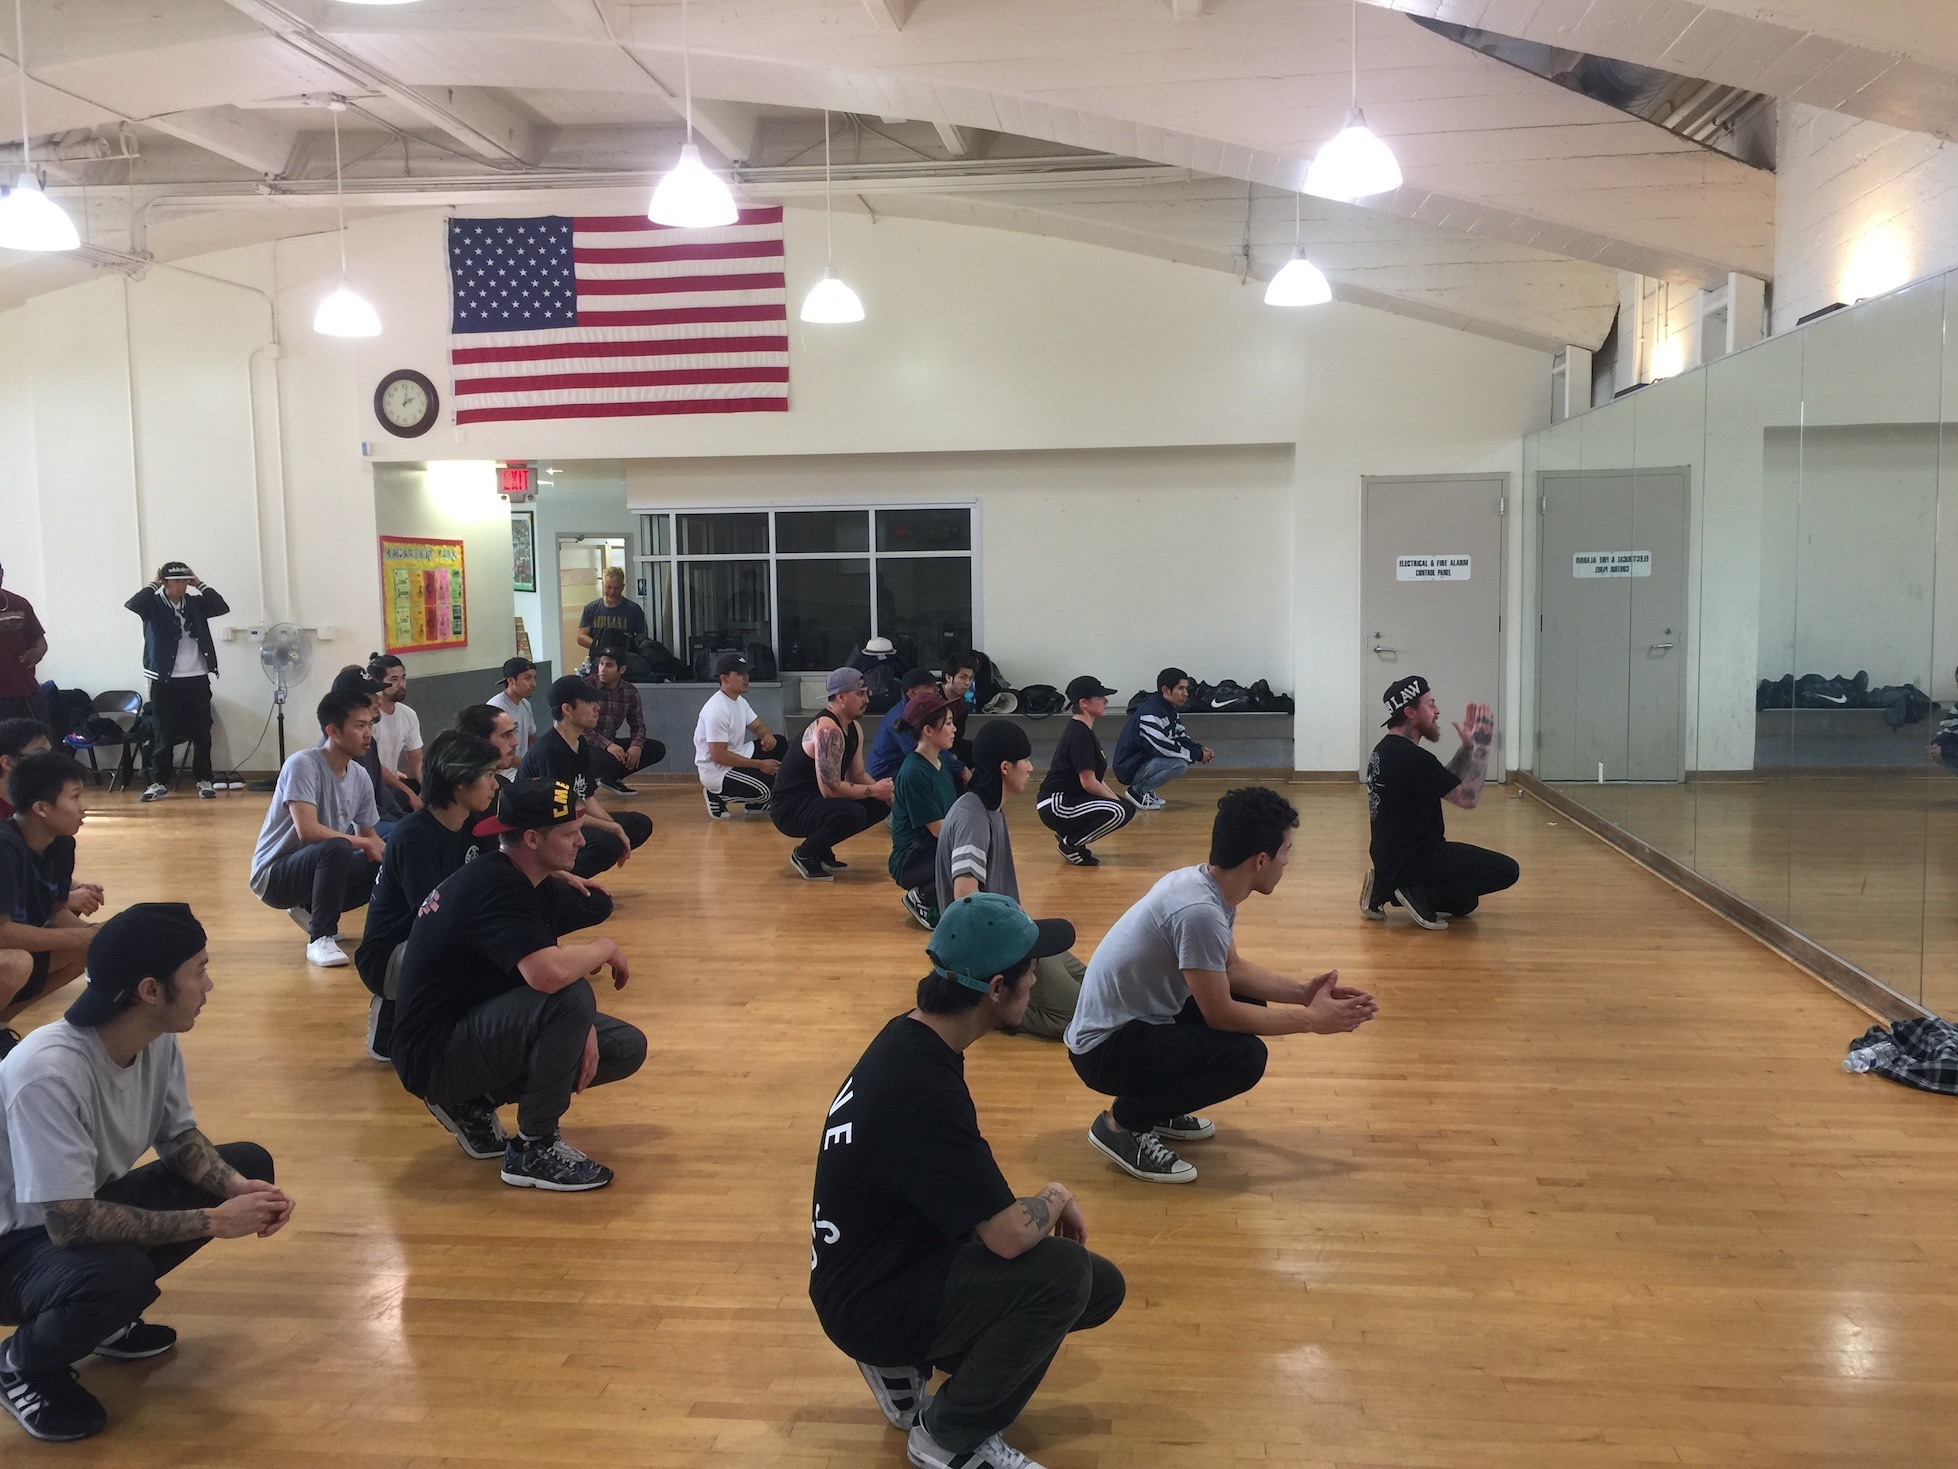 JUiCE Los Angeles Hip Hop Nonprofit Breakdance Music Art Community Youth Breakdance Los Angeles Workshop Bboys Teaching Lesson Free.jpg